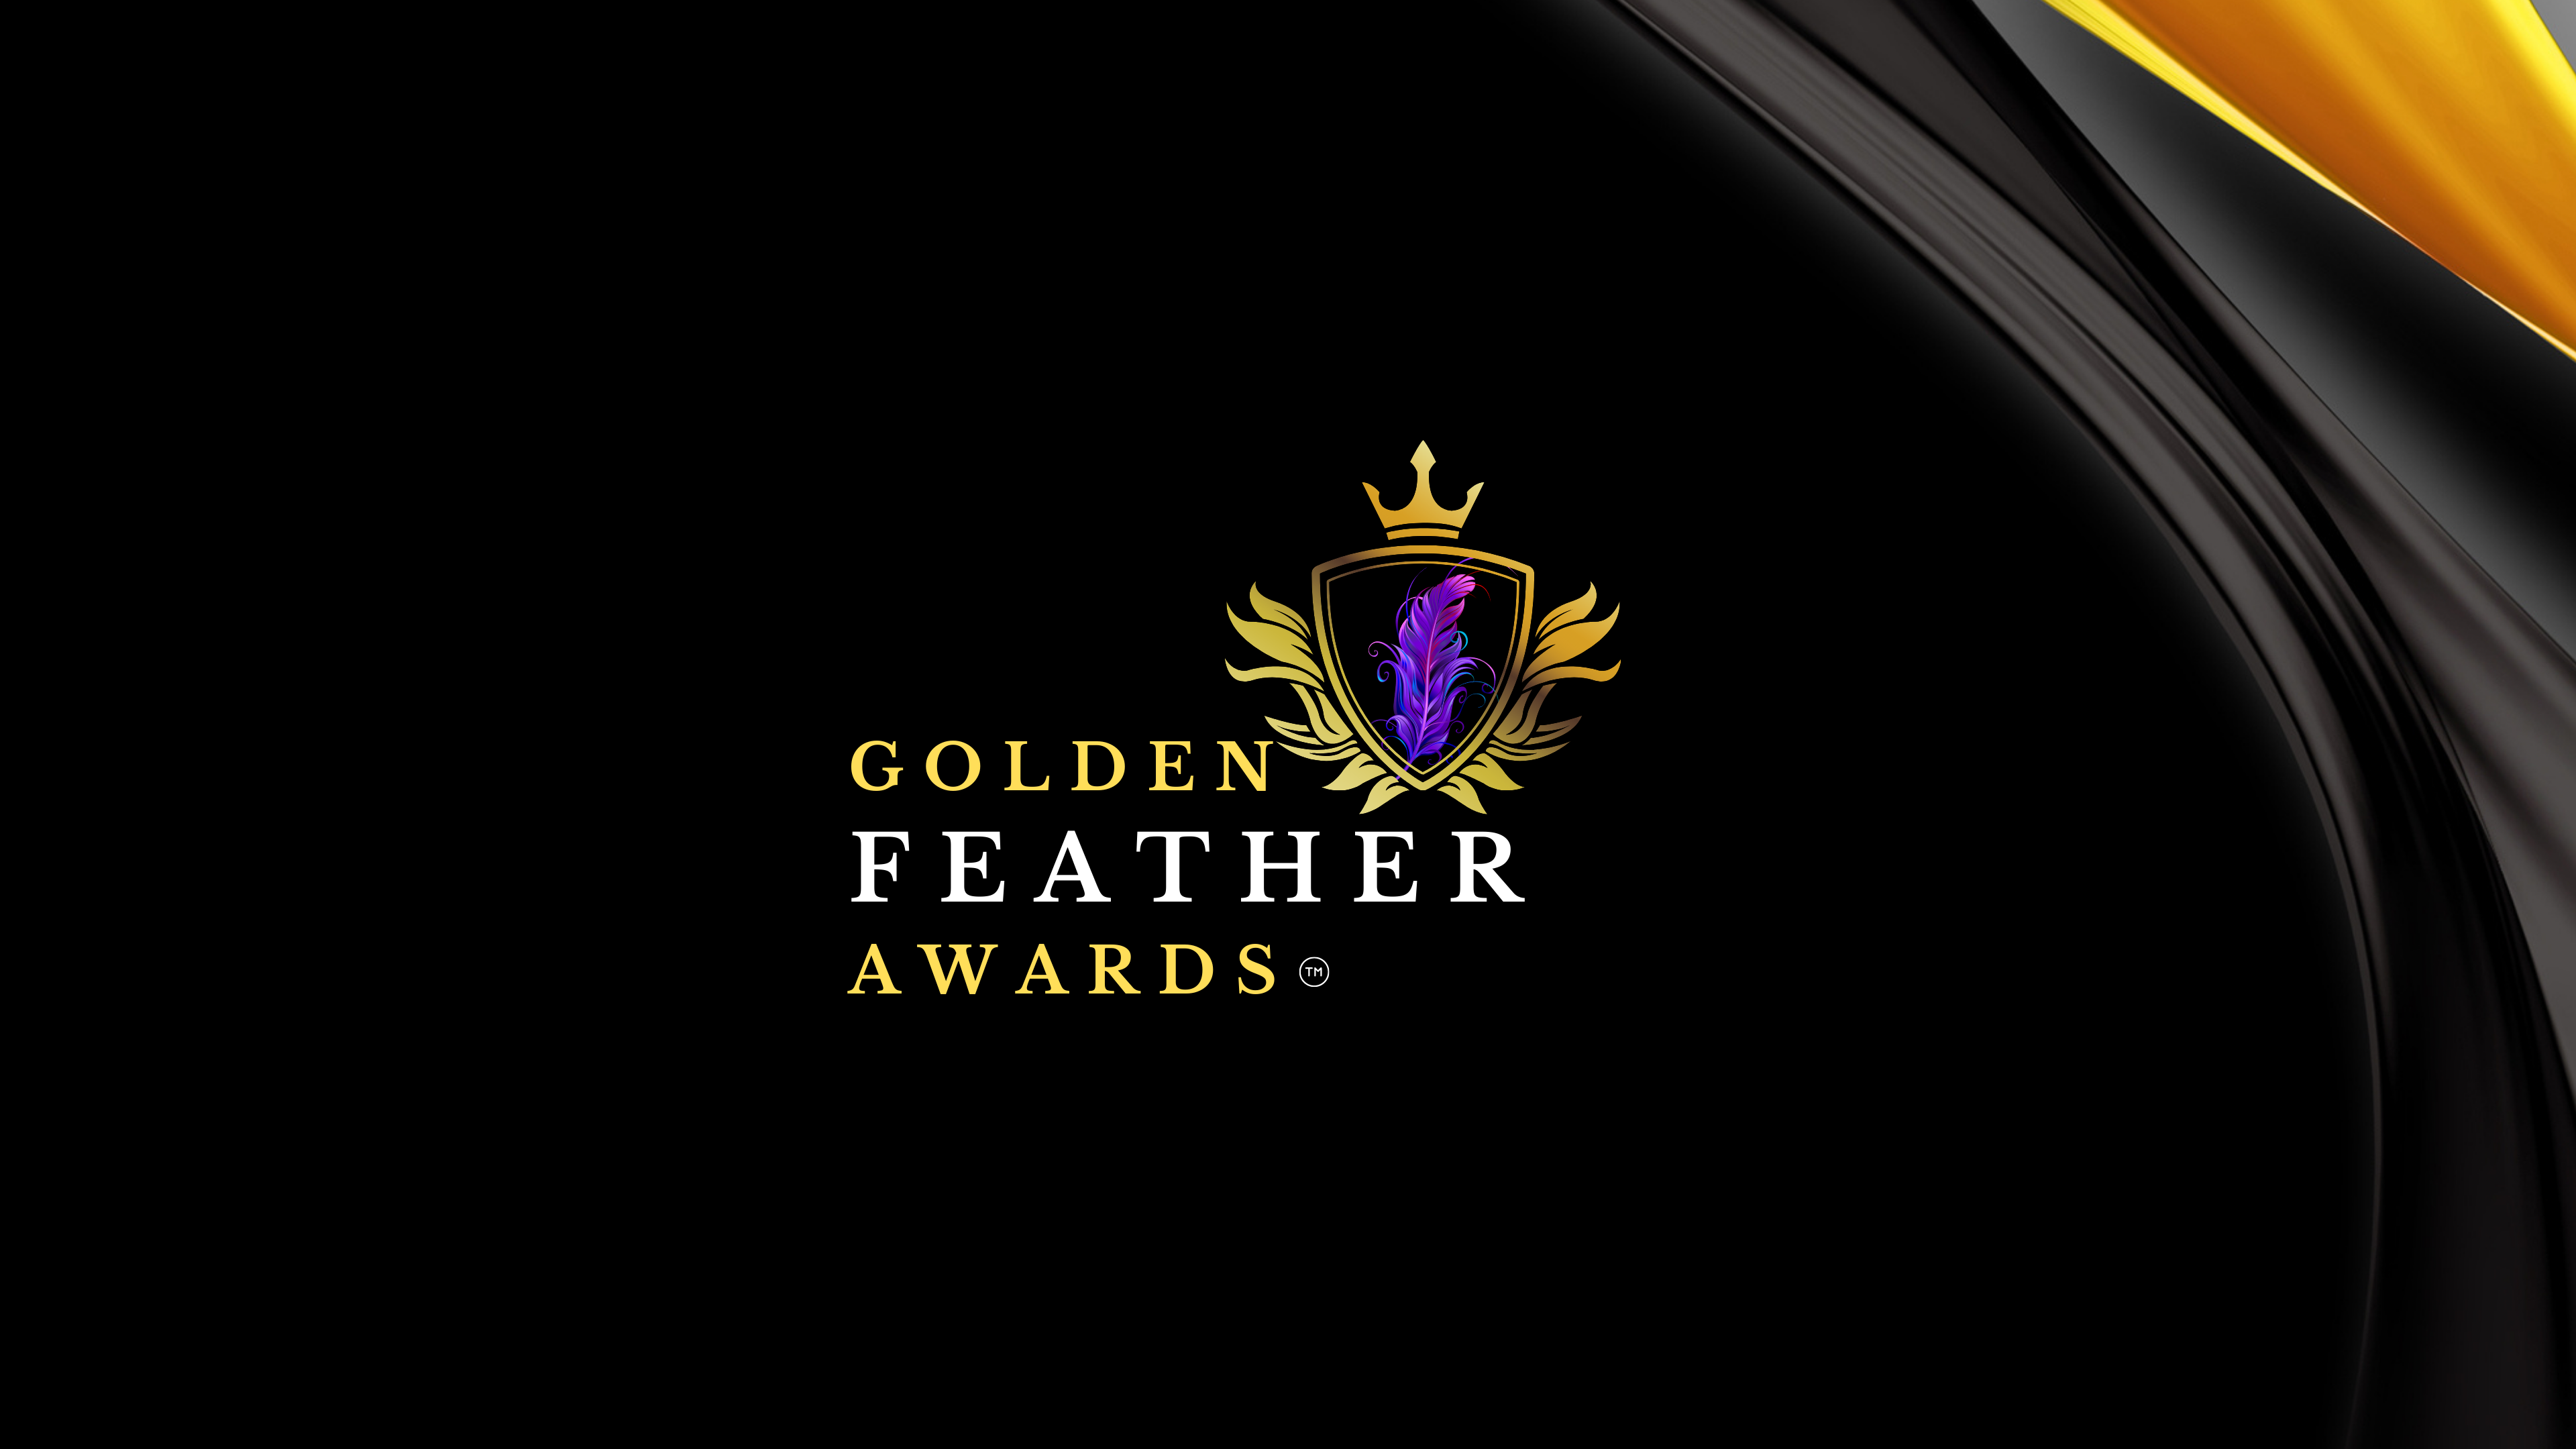 Golden Feather Awards - Feather Touch